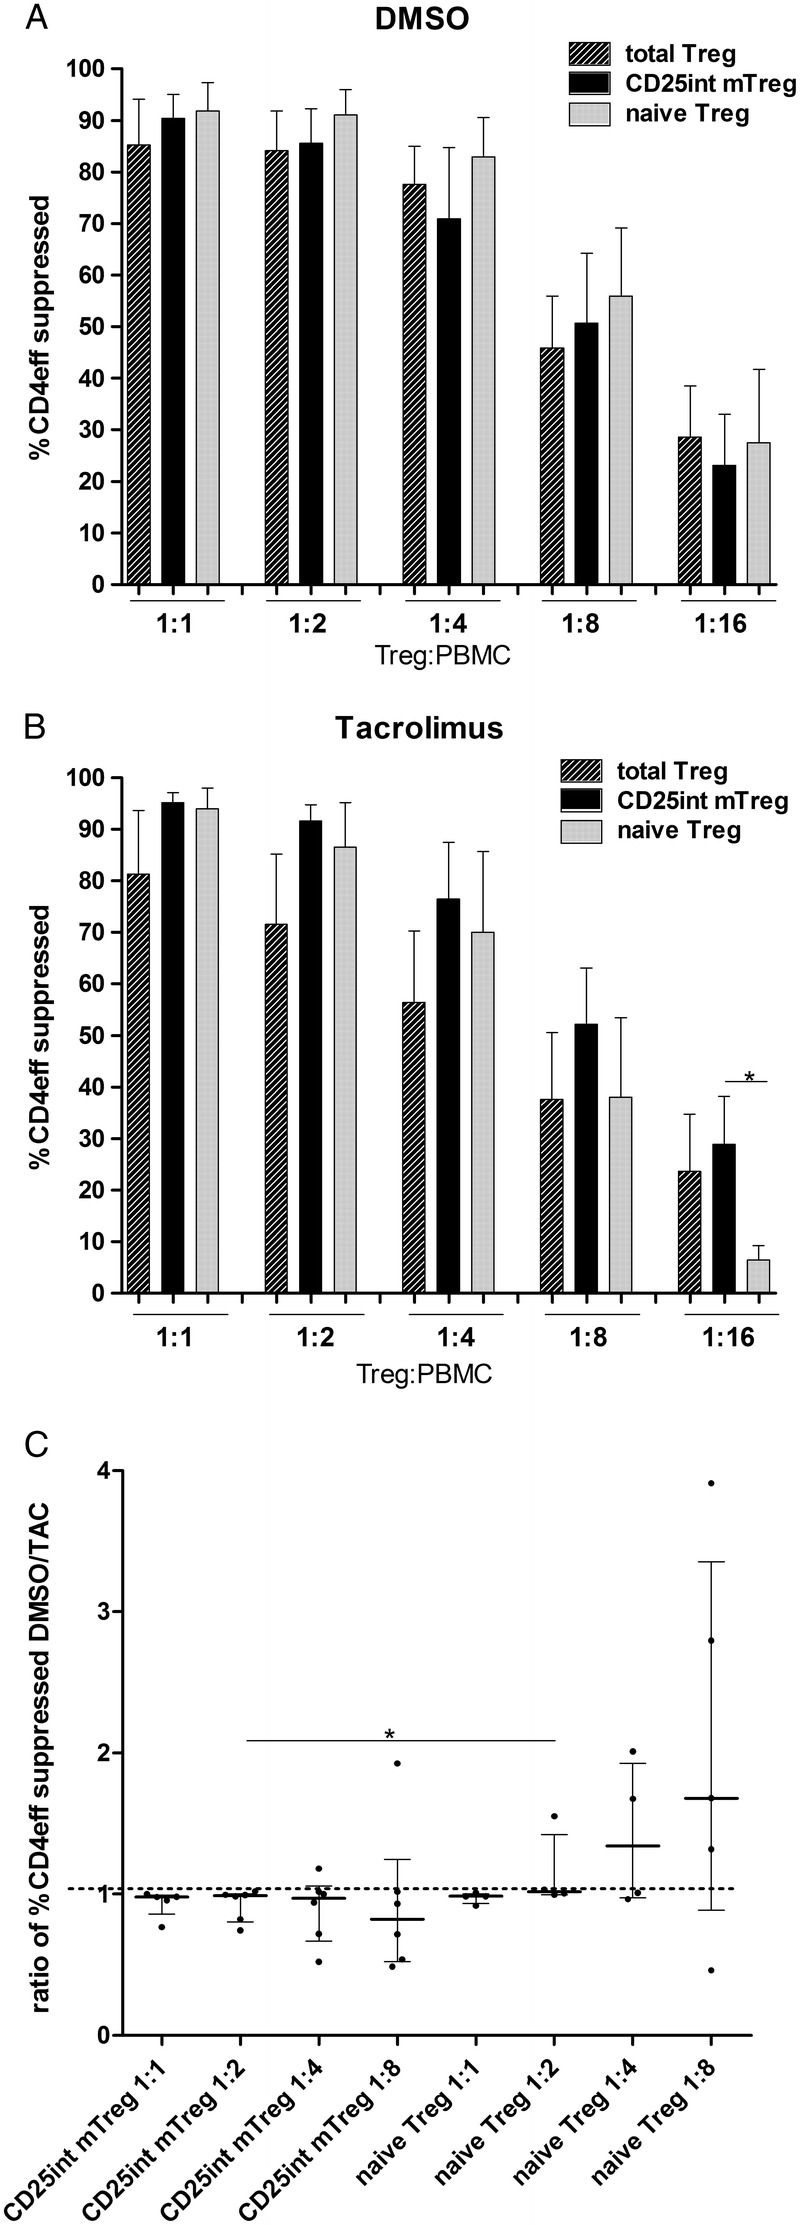 In vitro suppressive capacity of Treg cell populations. A, Suppressive capacity of CD25 int mTreg and naive Treg (n = 6 donors), and total Treg (n = 5 donors) after in vitro expansion in DMSO control media. B, Suppressive capacity of CD25 int mTreg and naive Treg (n = 6 and n = 5 donors, respectively), and total Treg cells (n = 5 donors) after in vitro expansion in the presence of TAC. Percent suppression of CD4 + effector cell proliferation based on division index of PBMCs compared with the proliferation of PBMCs cultured in the absence of suppressor cells. Each data point is the average of 3 replicate wells in the suppression assay of each donor. Mann-Whitney U test used to compare suppression between Treg subpopulations (* P